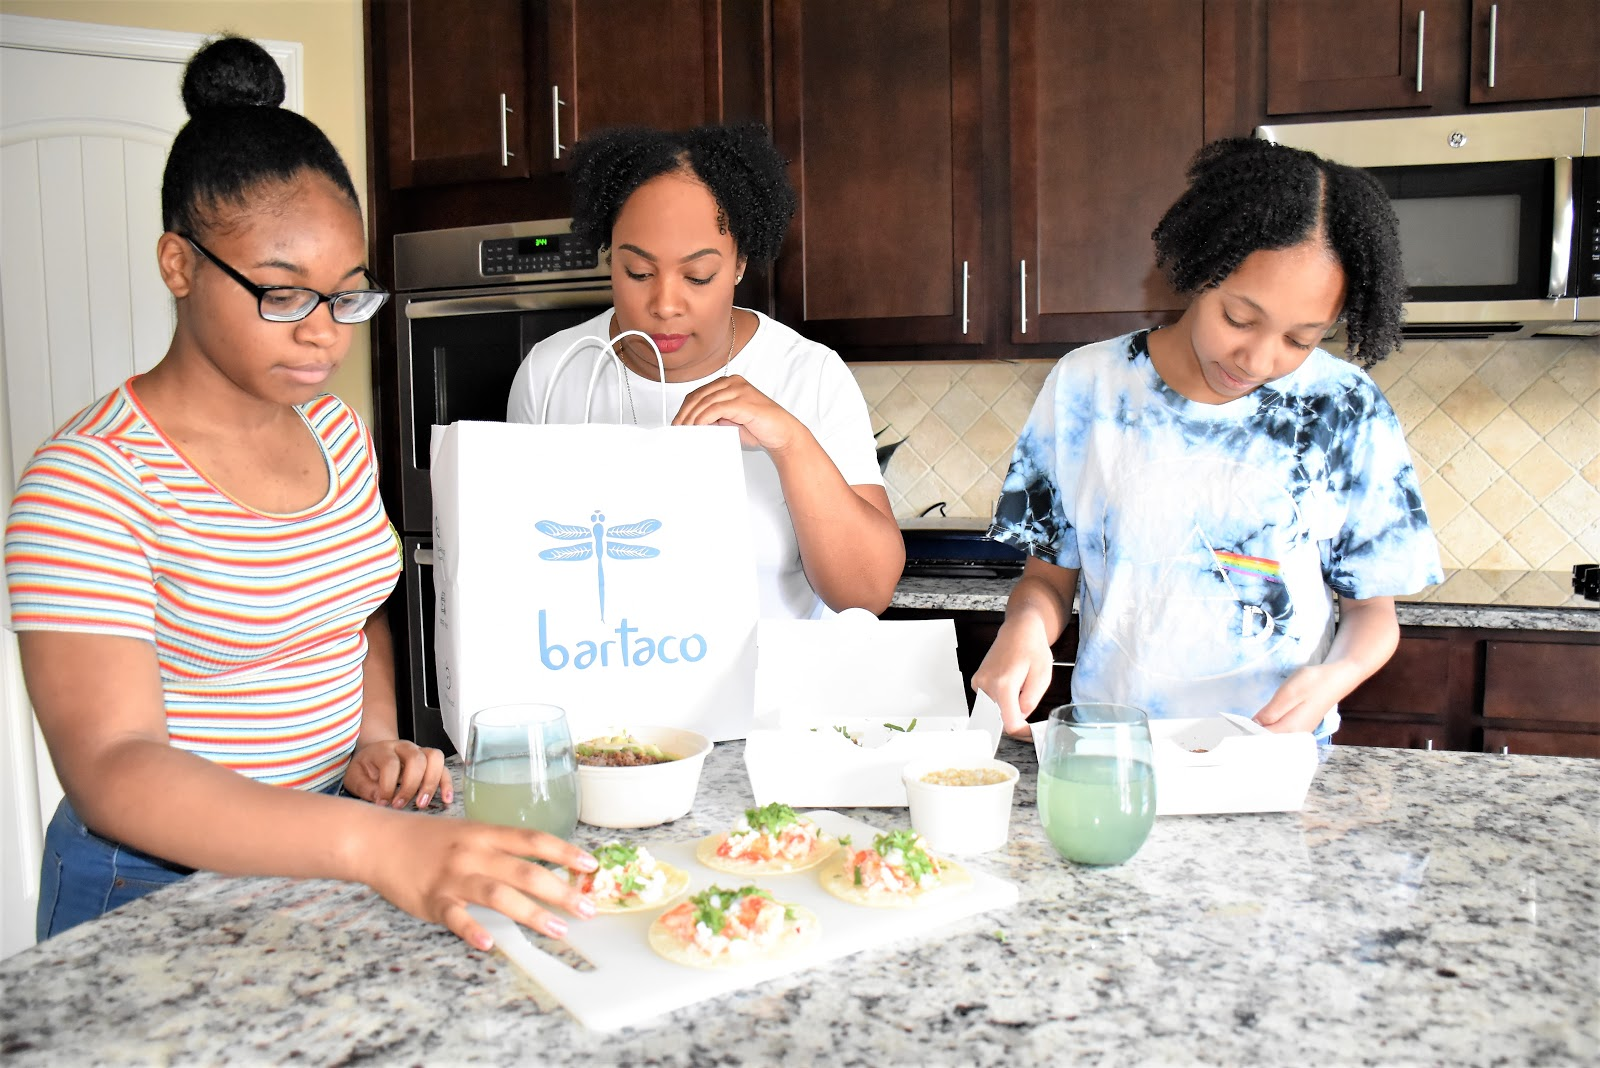 Summer Eats with bartaco's Tasty Lobster Tacos